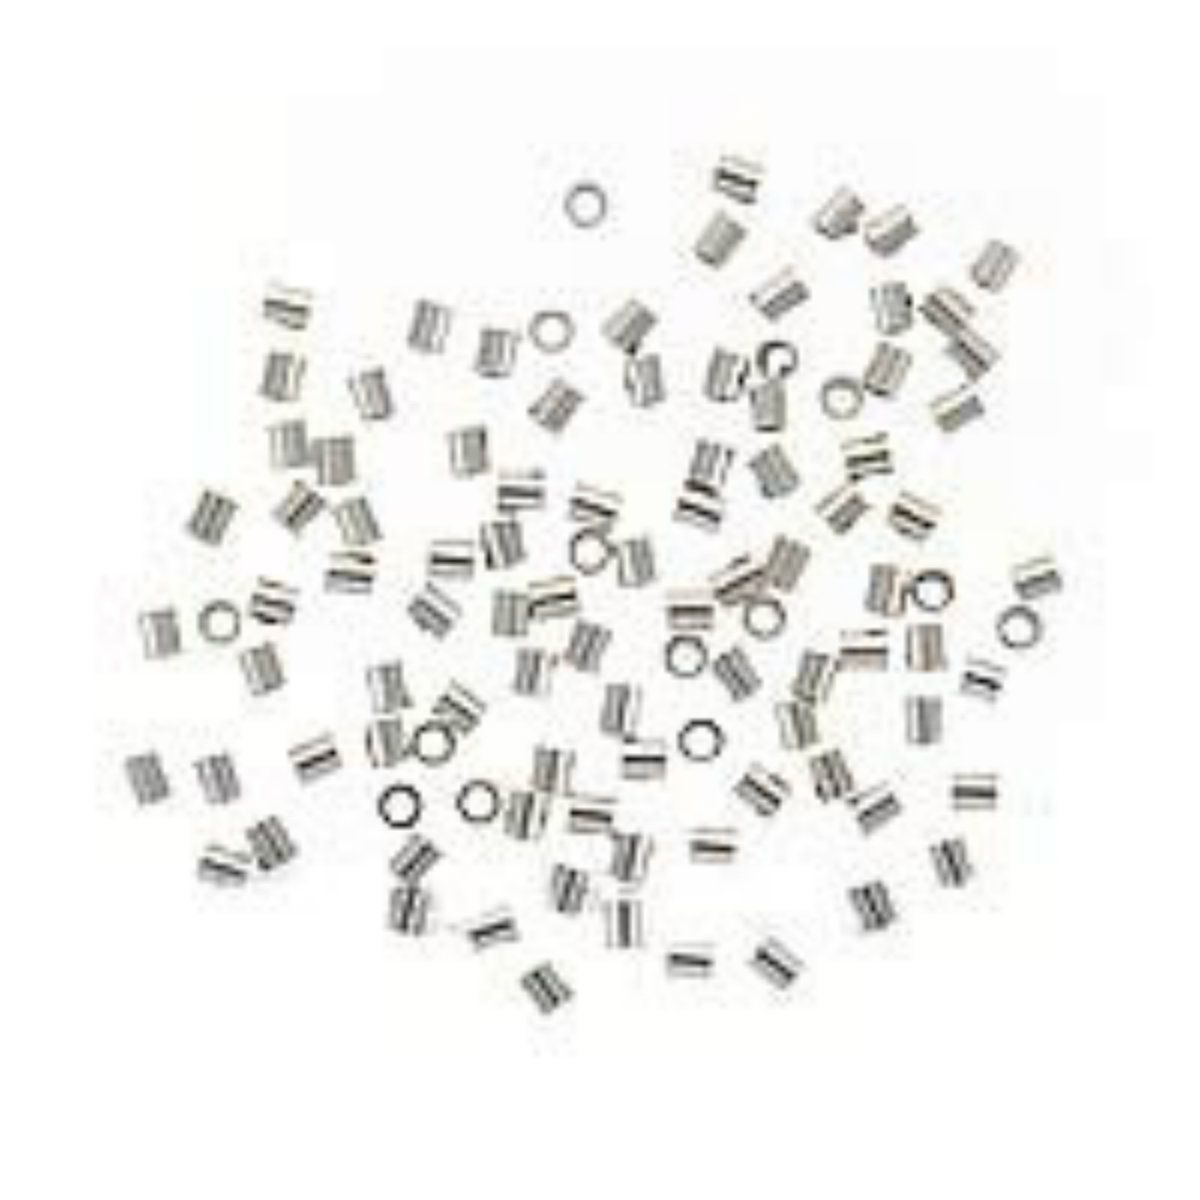 What size crimp bead do you use with each different size of beading wire? I get this question a lot.